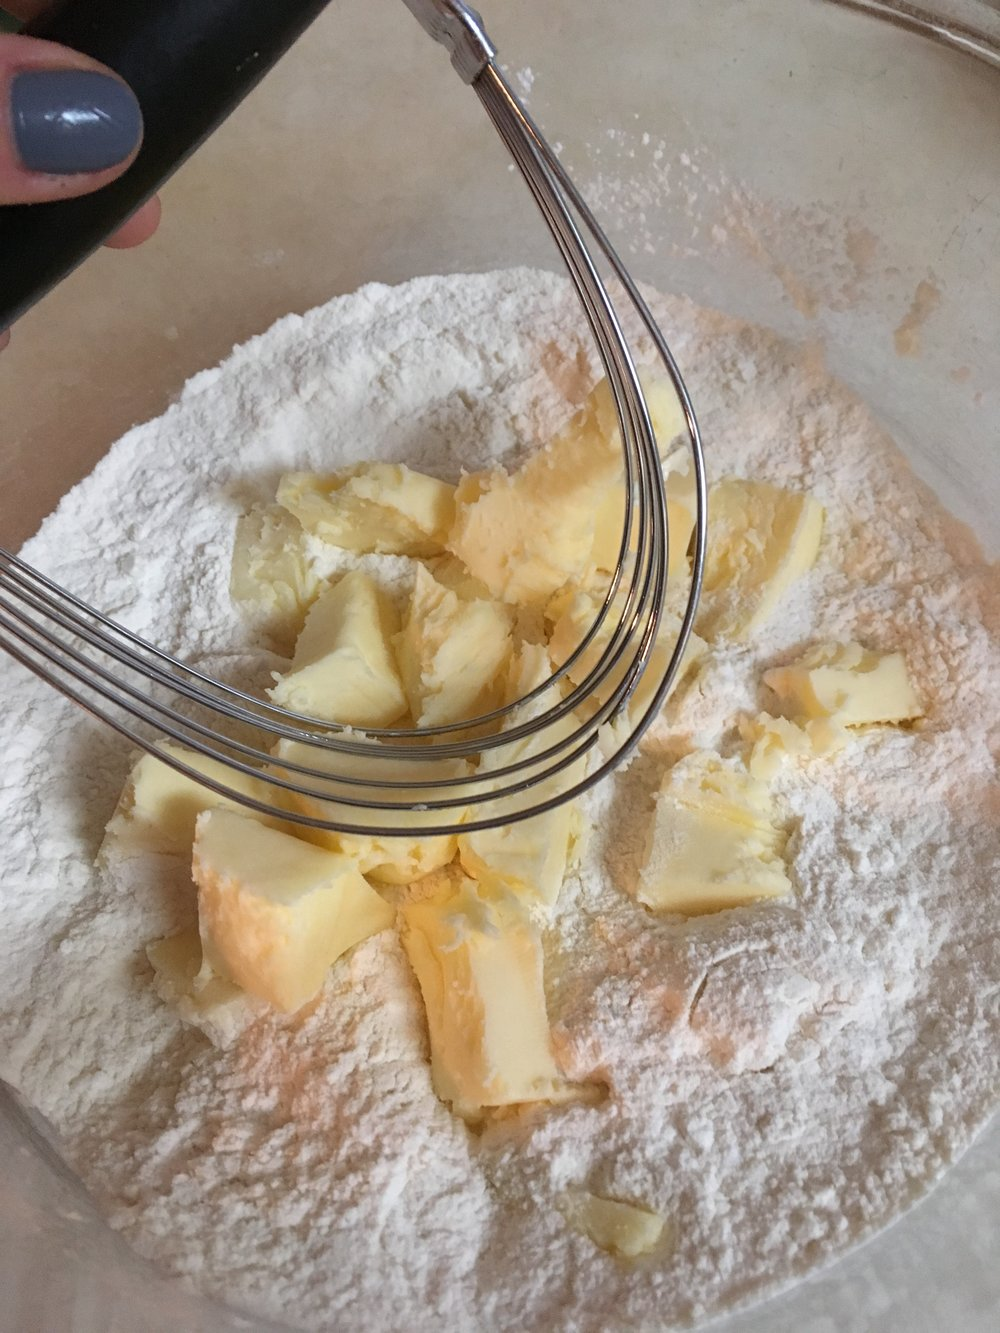 Make sure you cut the butter into the flour mixture, before adding milk